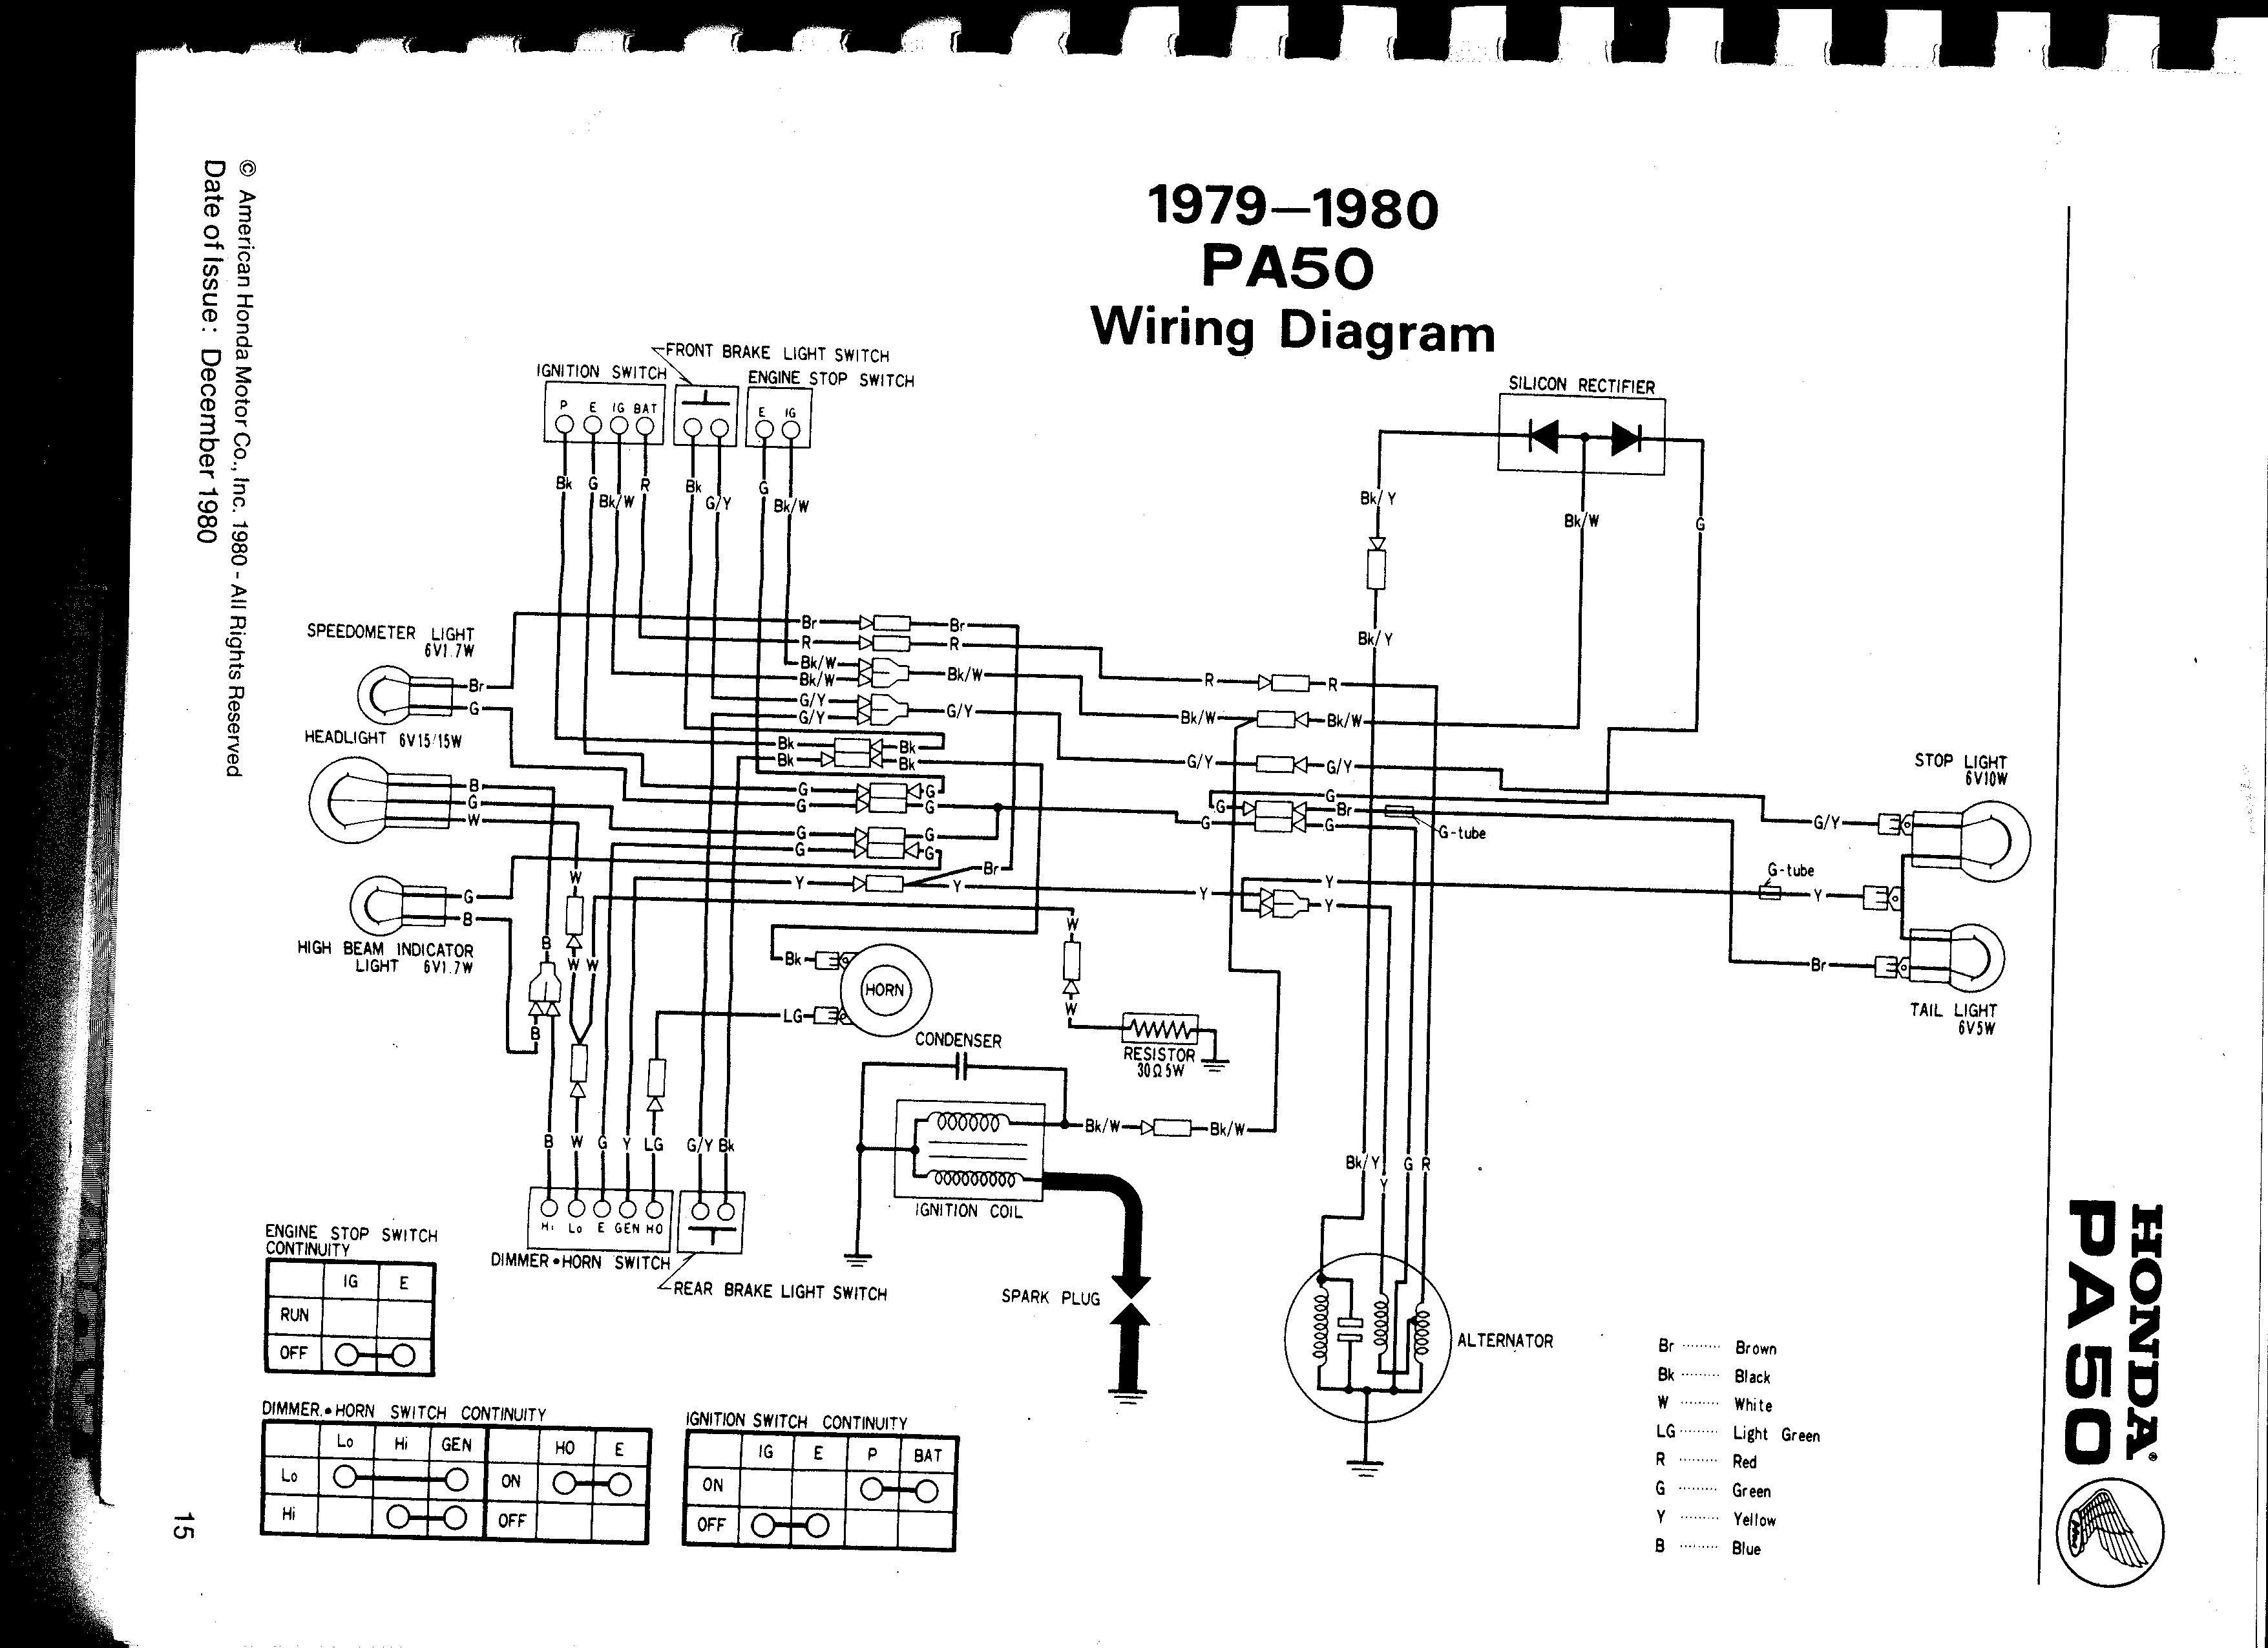 Re Wiring Diagram Honda Pa 50